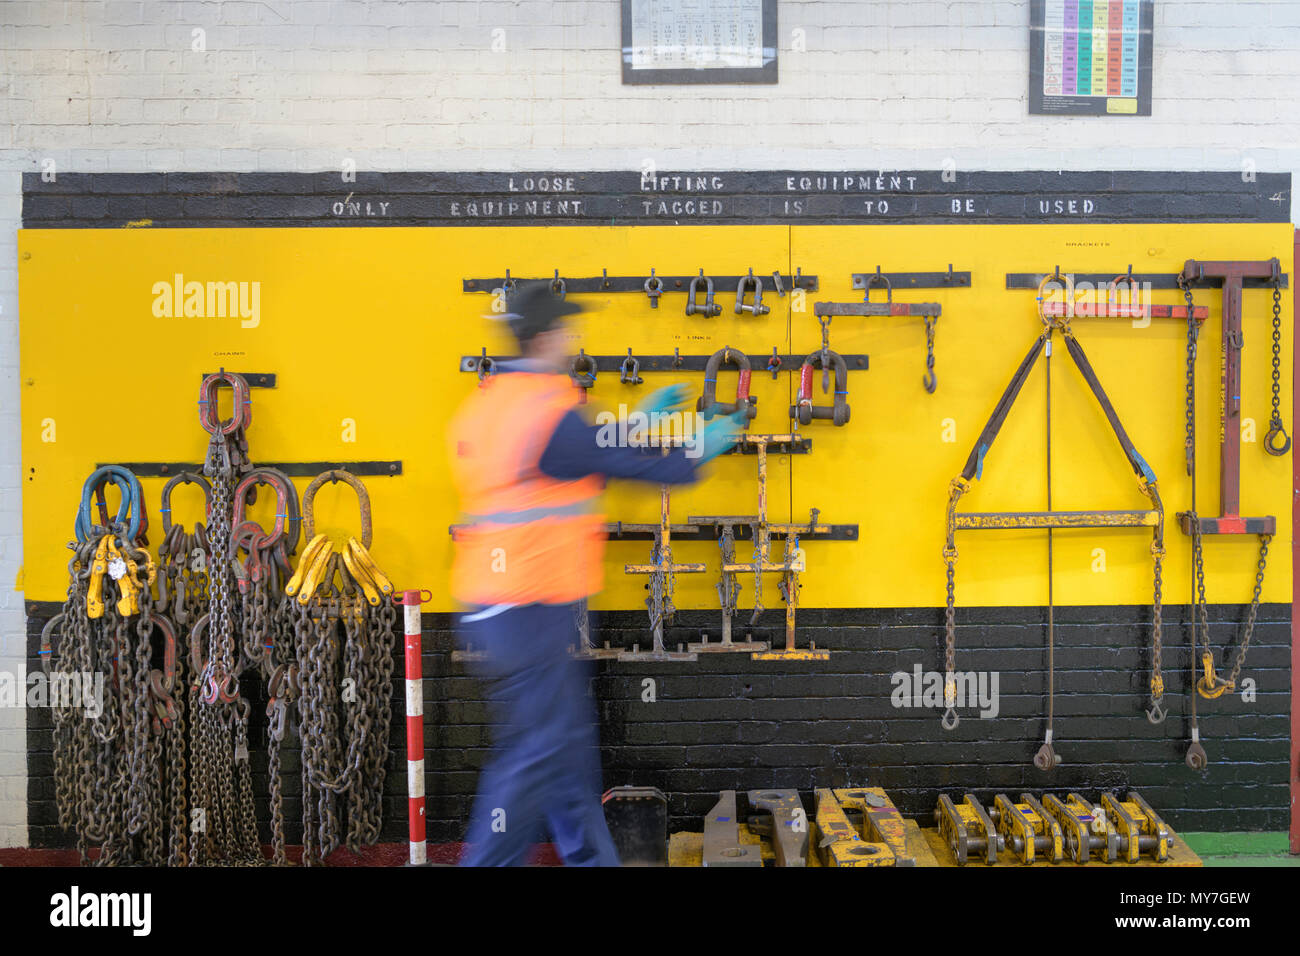 Engineer selecting lifting equipment in train engineering factory - Stock Image